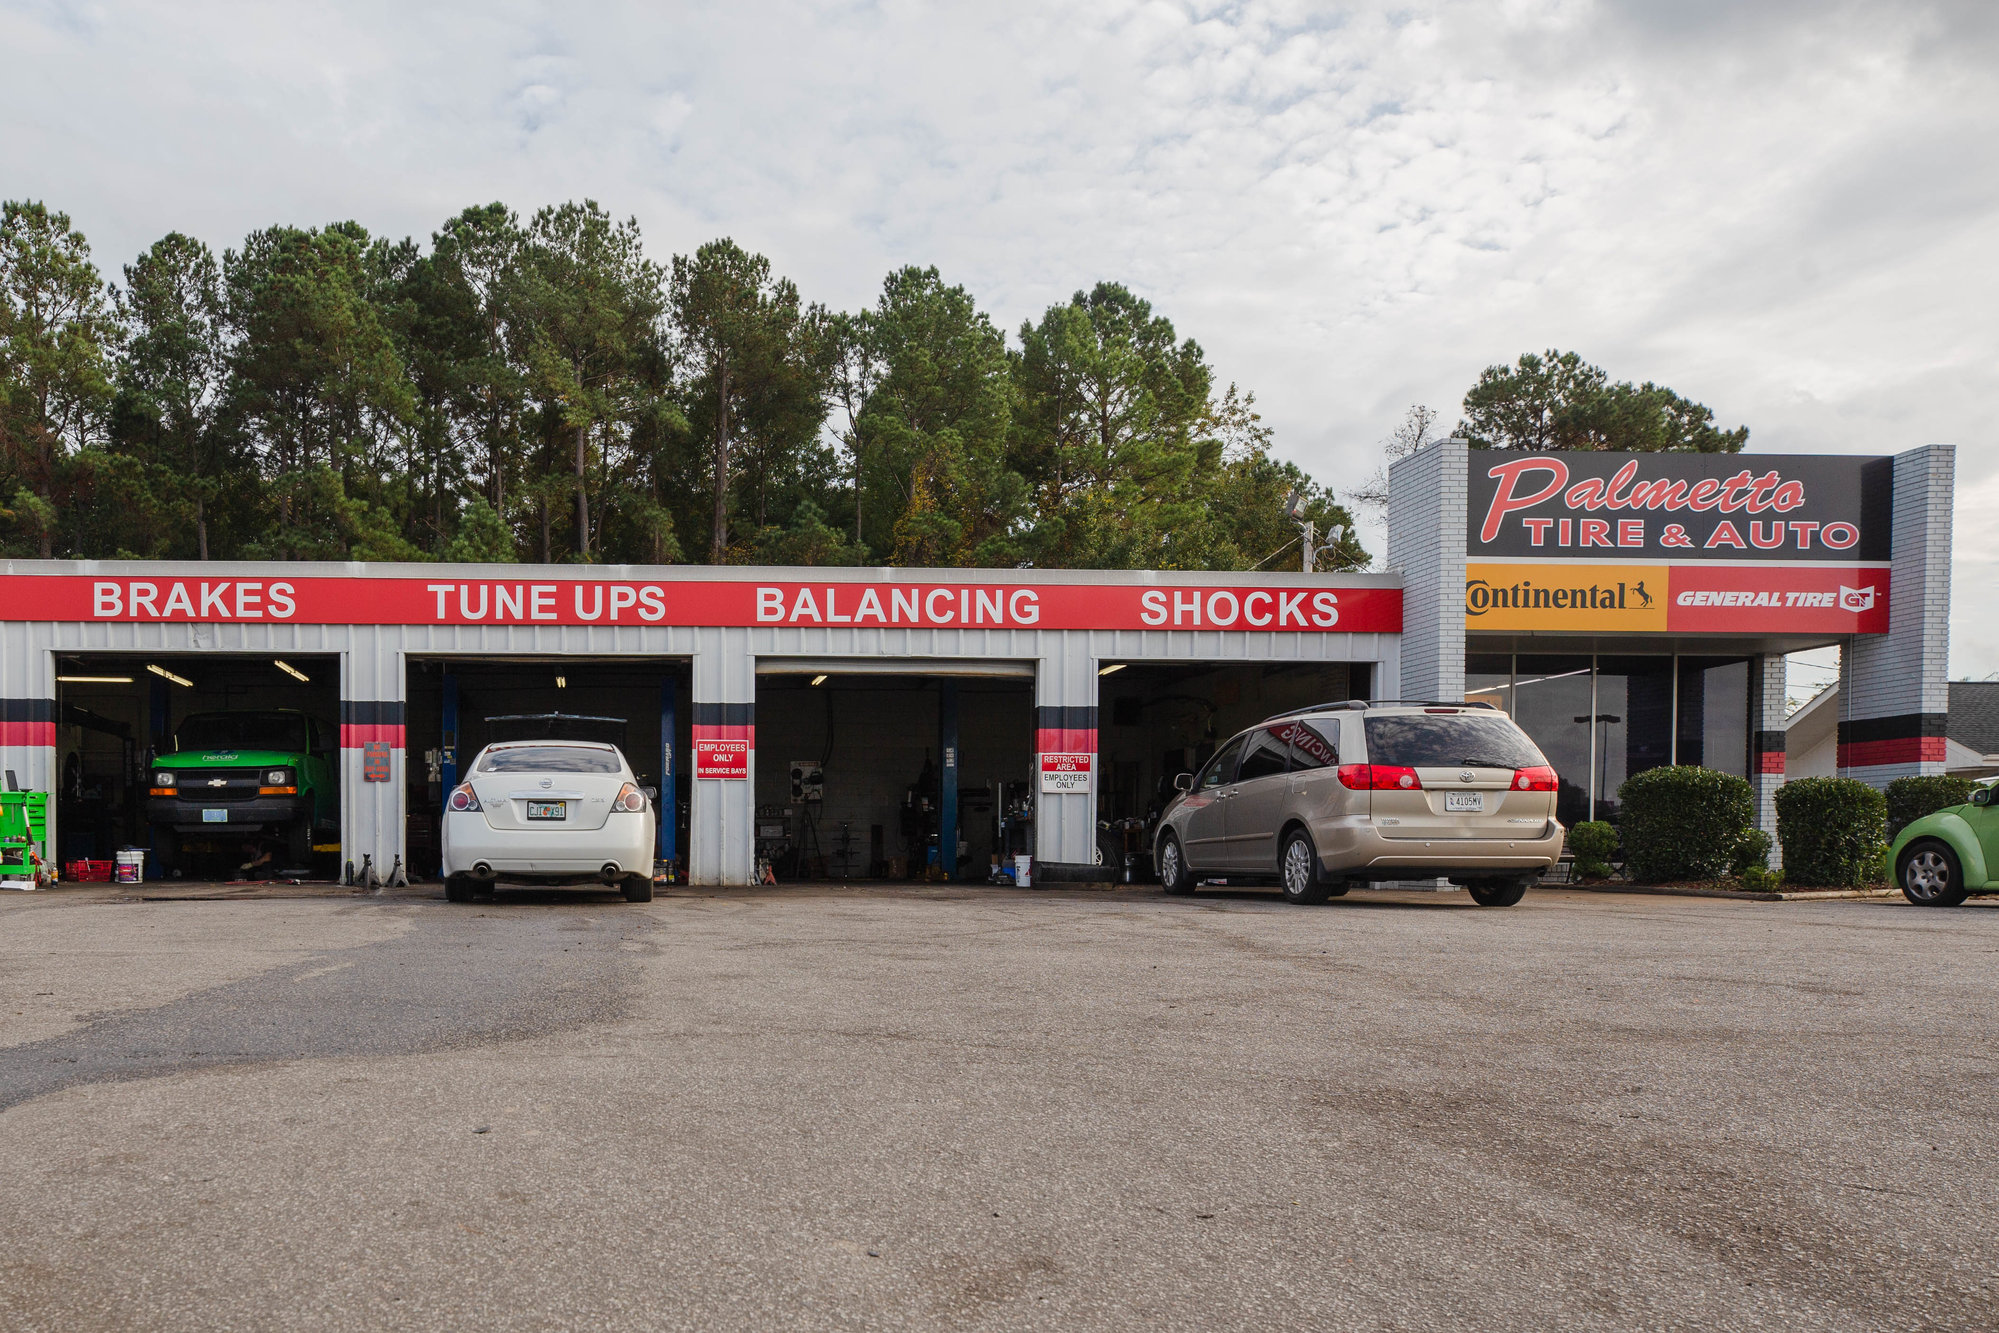 Palmetto Tire and Auto has received an outpouring of support from the community since a shooting incident left three people injured on Oct. 21. Employees said that someone has come nearly every day to feed their team and relay the message that the community is behind them.